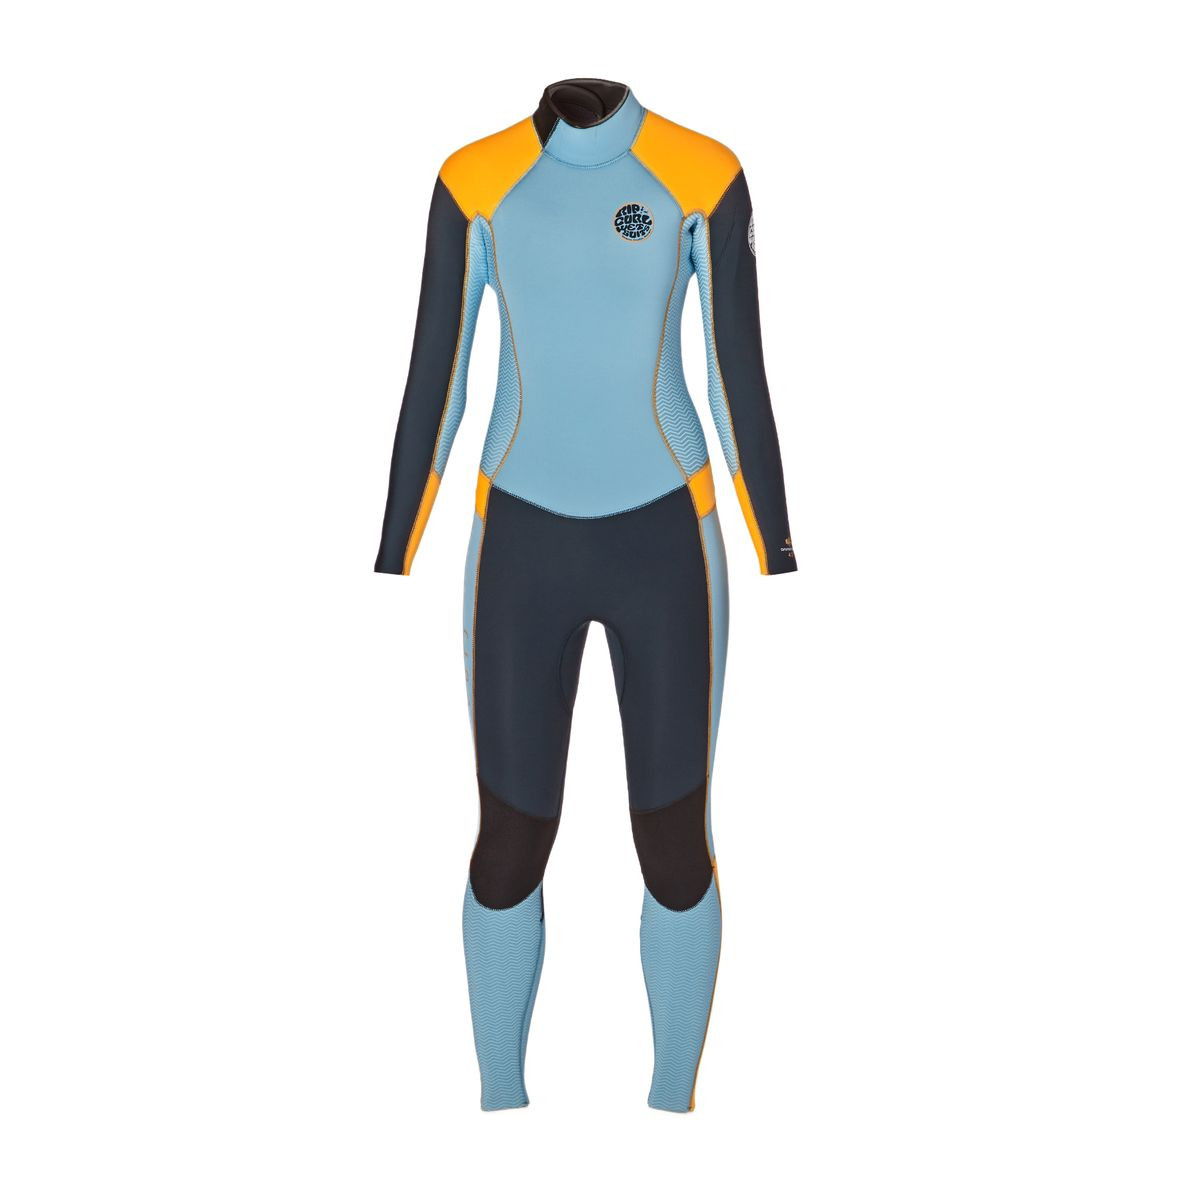 Rip Curl Womens Dawn Patrol 4/3mm 2017 Back Zip Wetsuit - Slate/ Orange